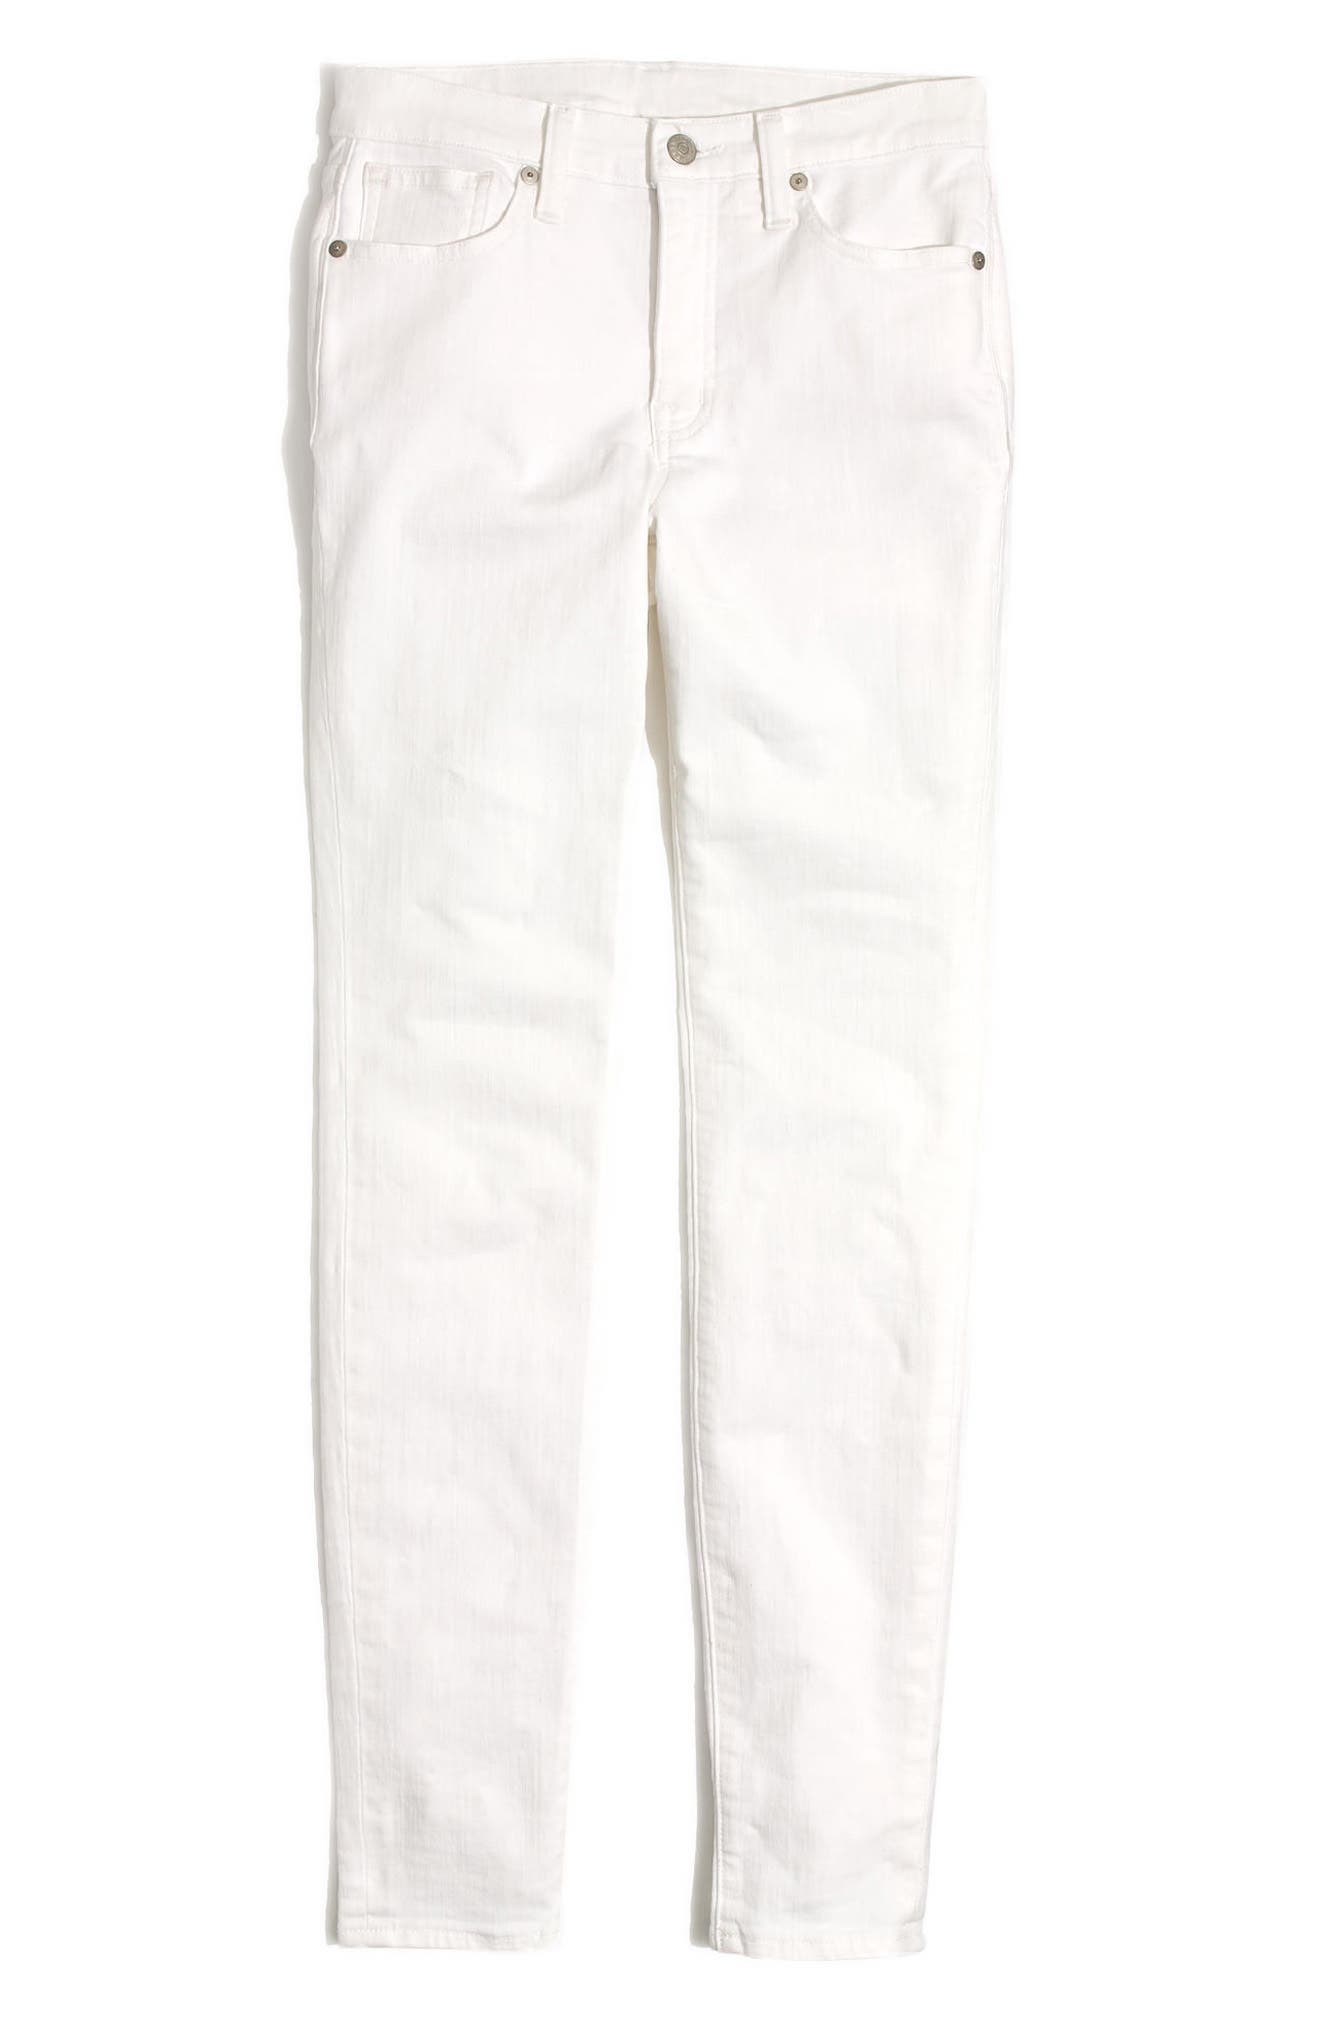 9-Inch High Waist Skinny Jeans,                             Alternate thumbnail 6, color,                             PURE WHITE